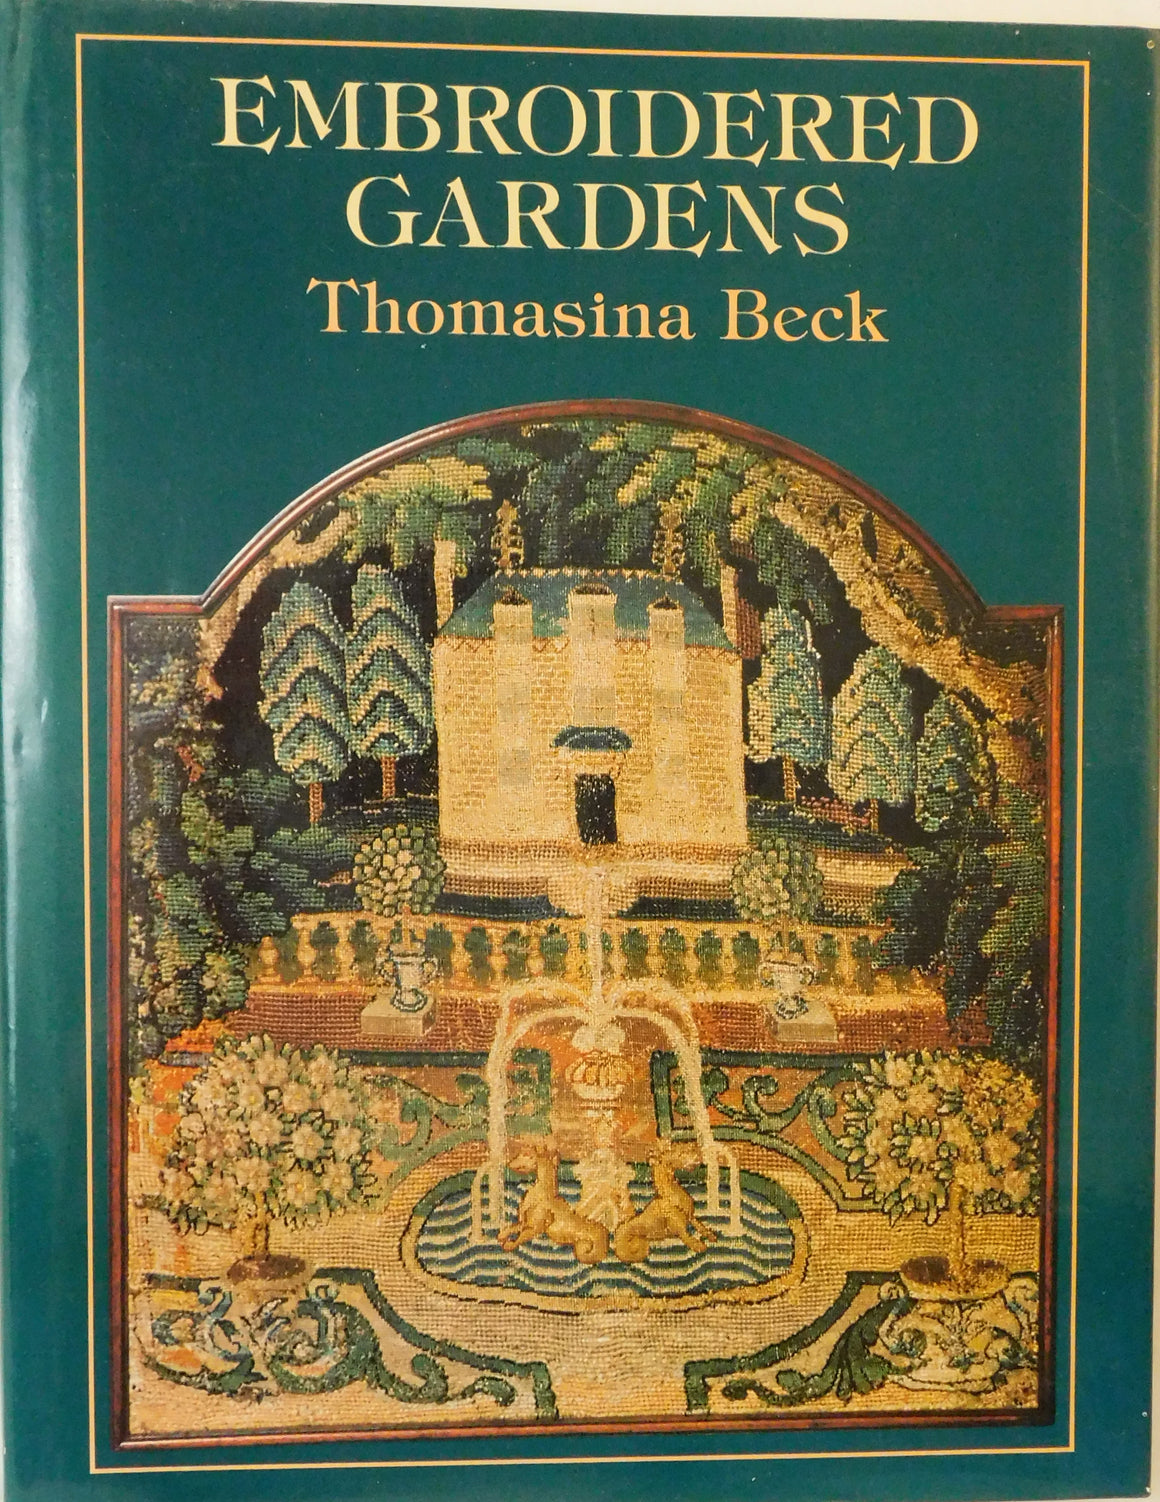 Embroidered Gardens - Used Book